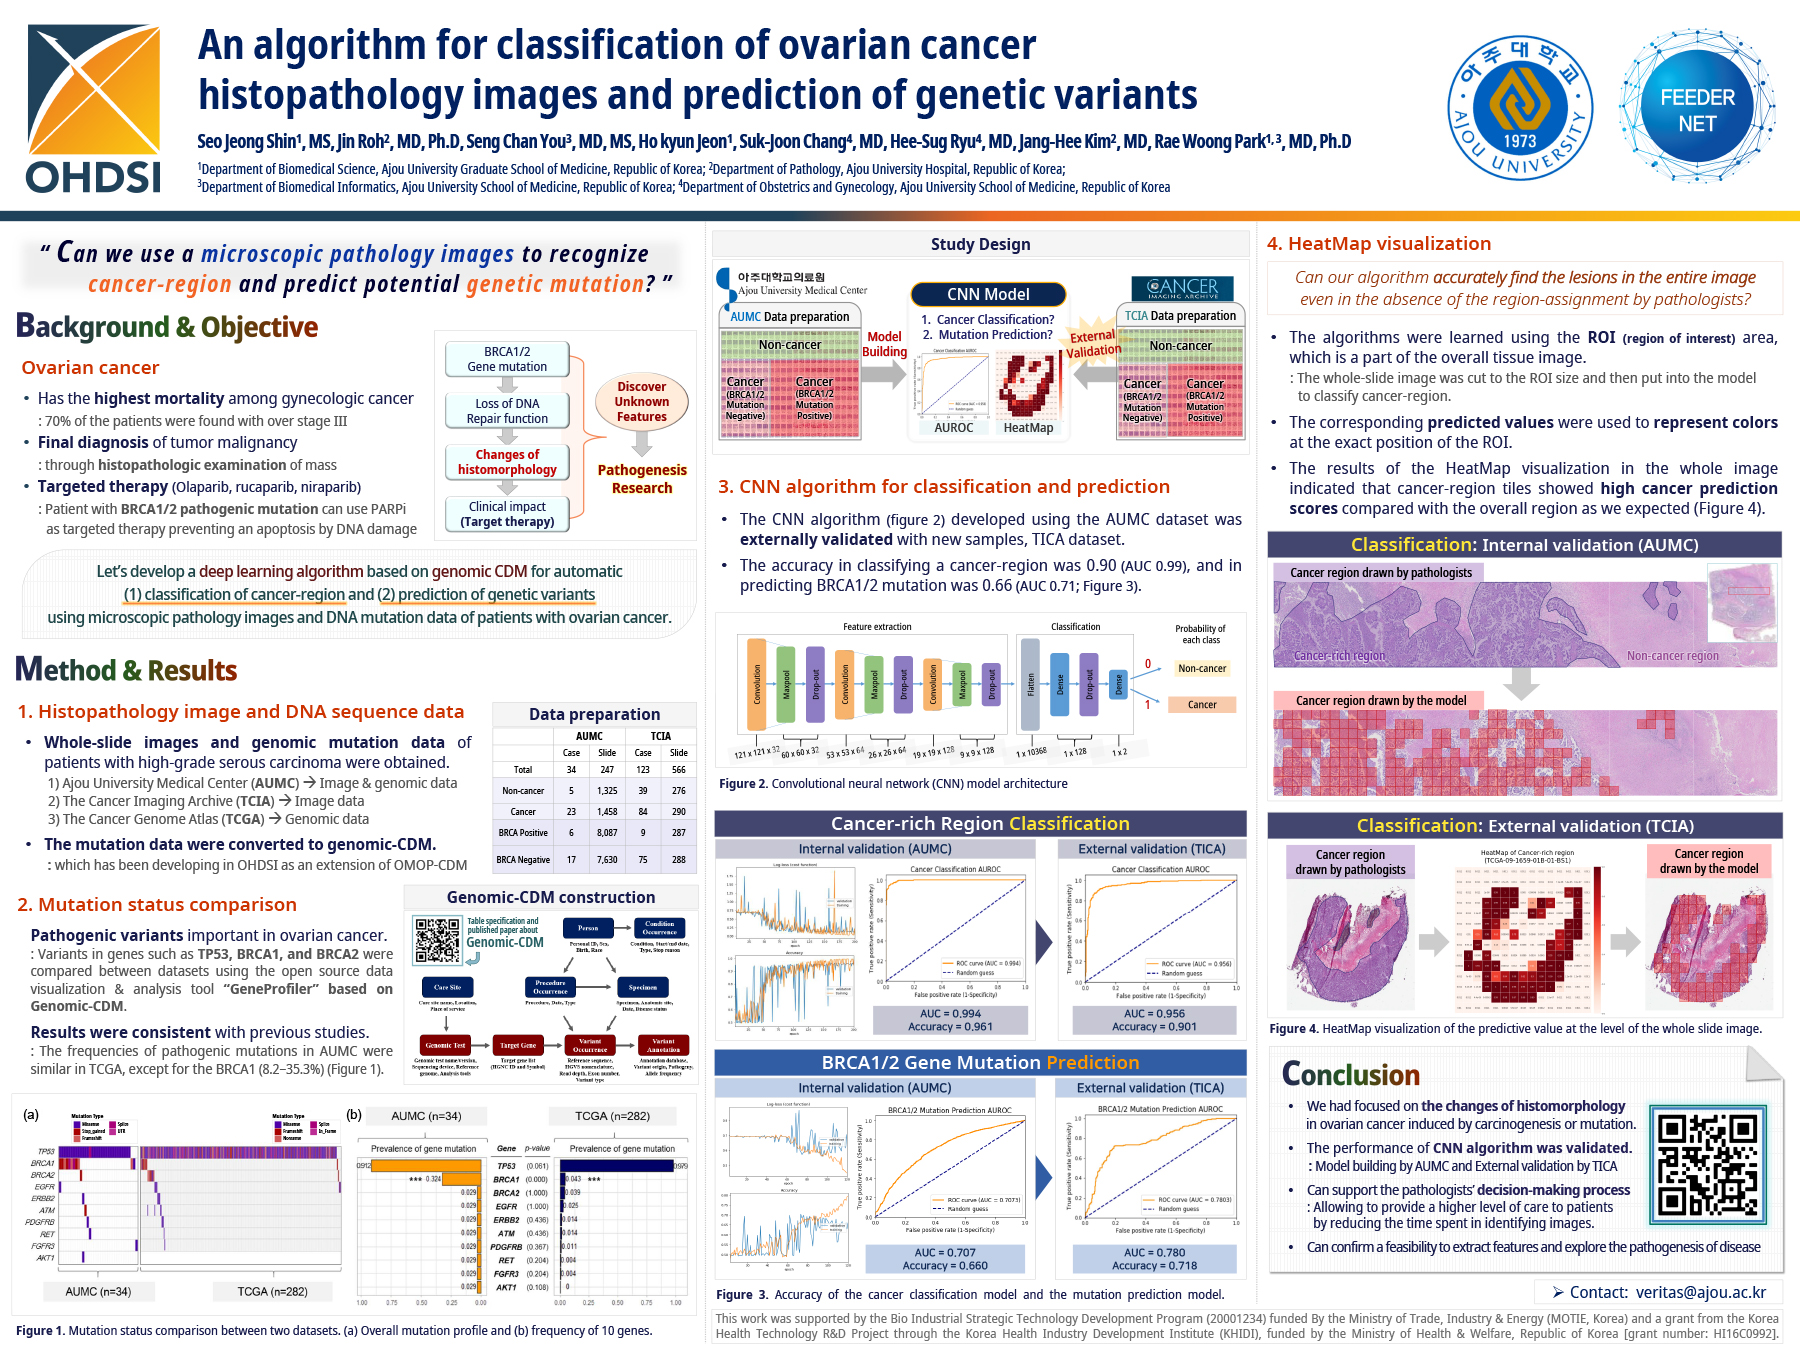 An Algorithm For Classification Of Ovarian Cancer Histopathology Images And Prediction Of Genetic Variants Ohdsi